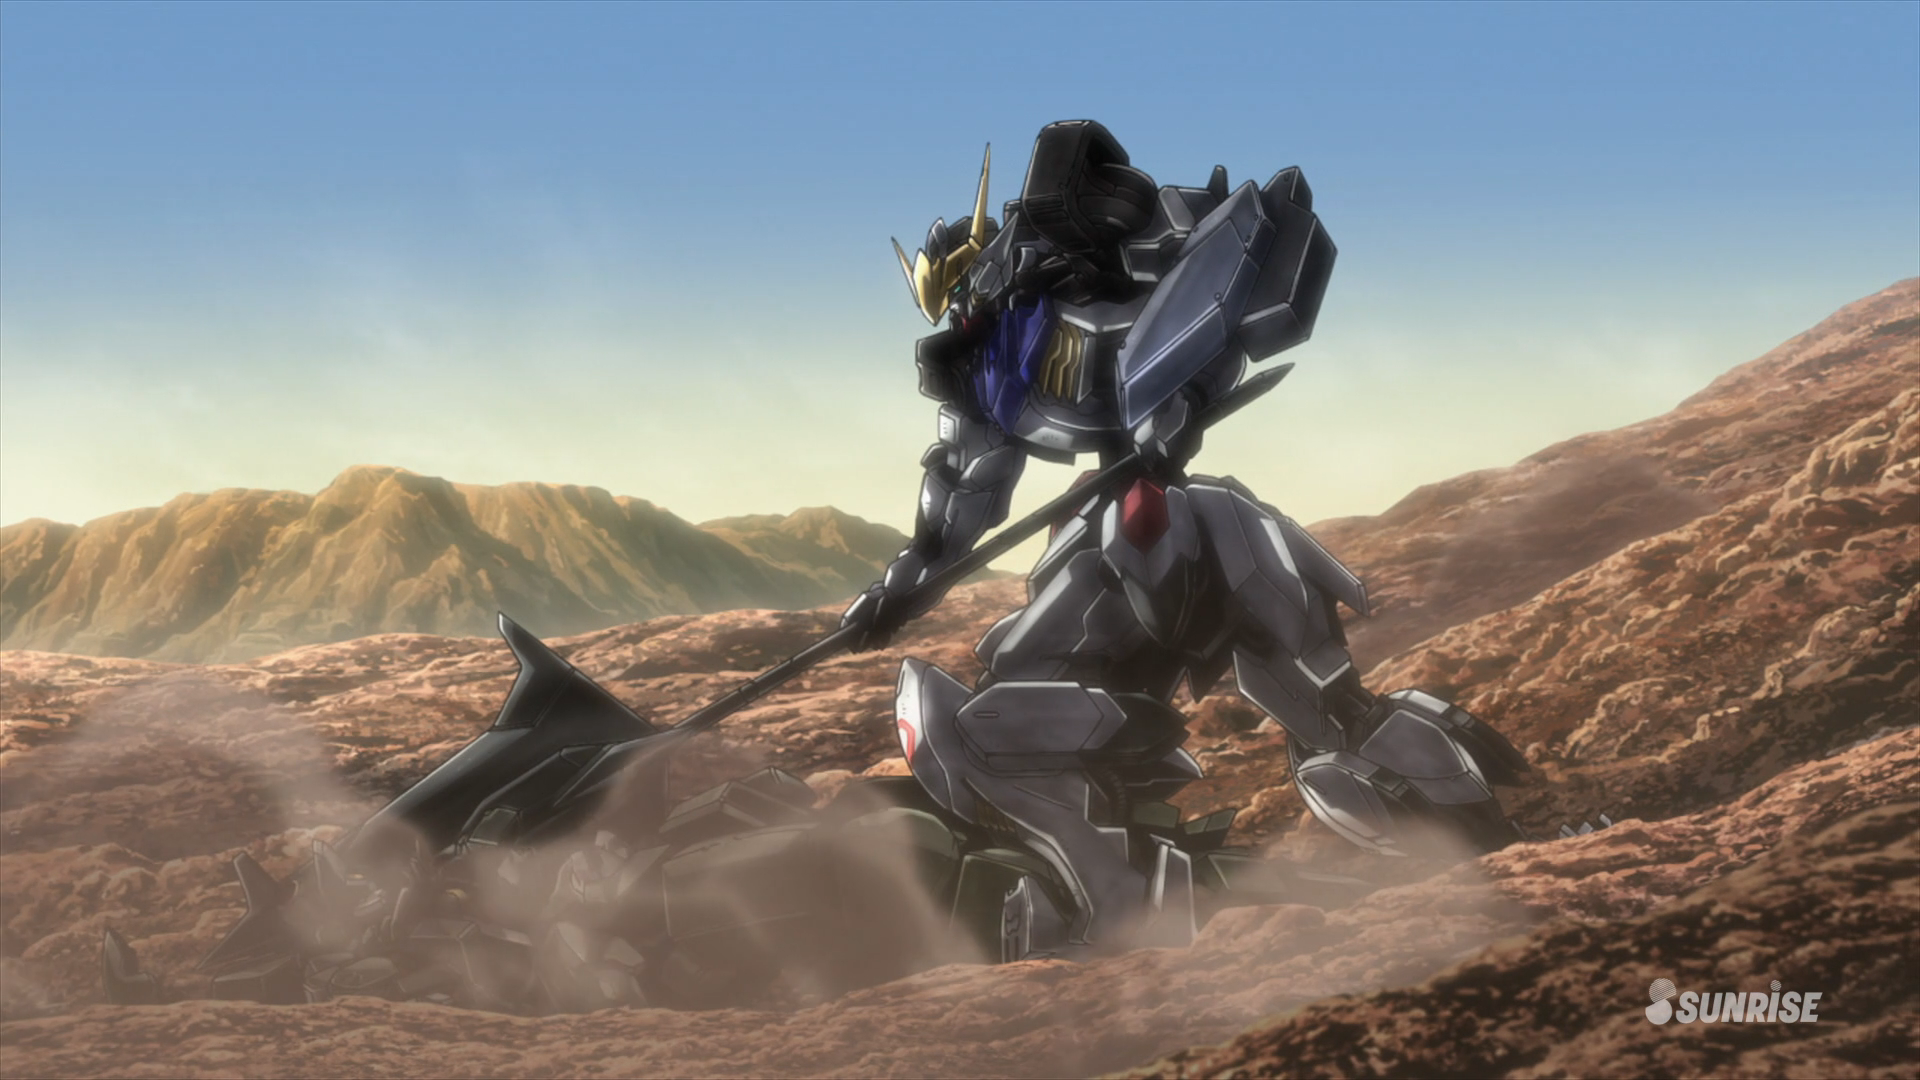 Gundam Iron Blooded Orphans Wallpaper Hd Posted By Samantha Thompson